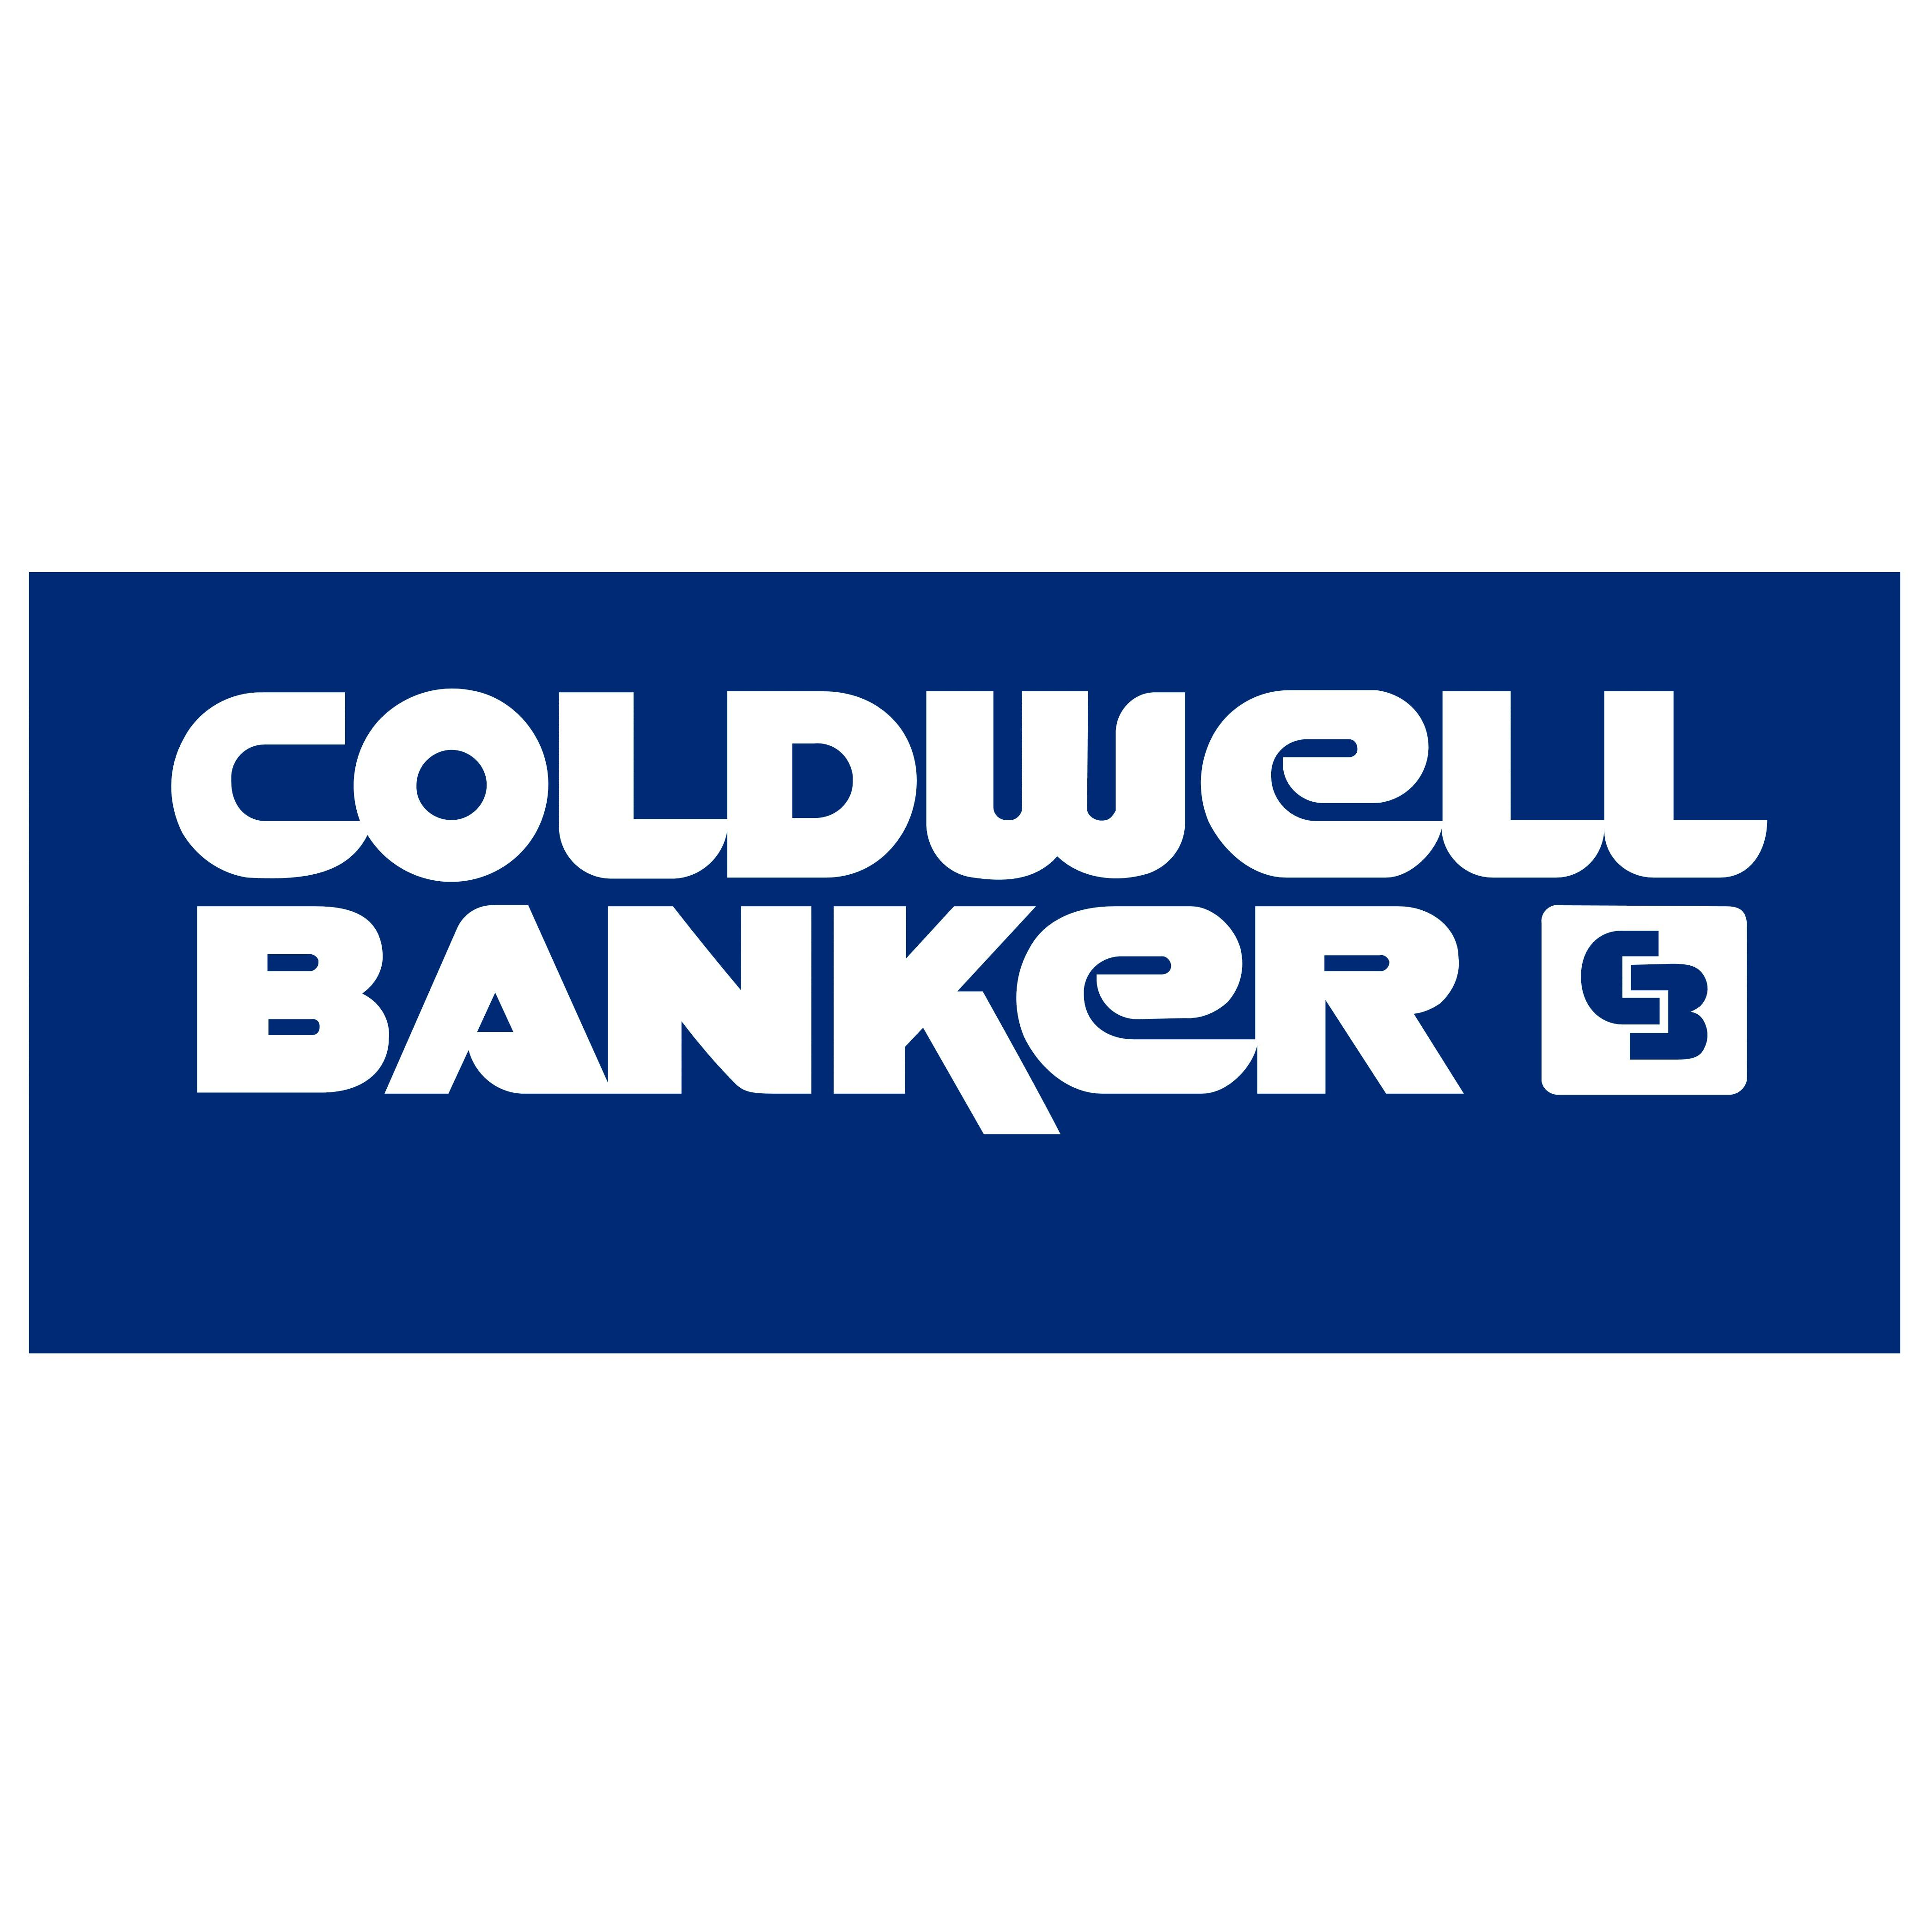 Amy Mosley | Coldwell Banker Residential Brokerage